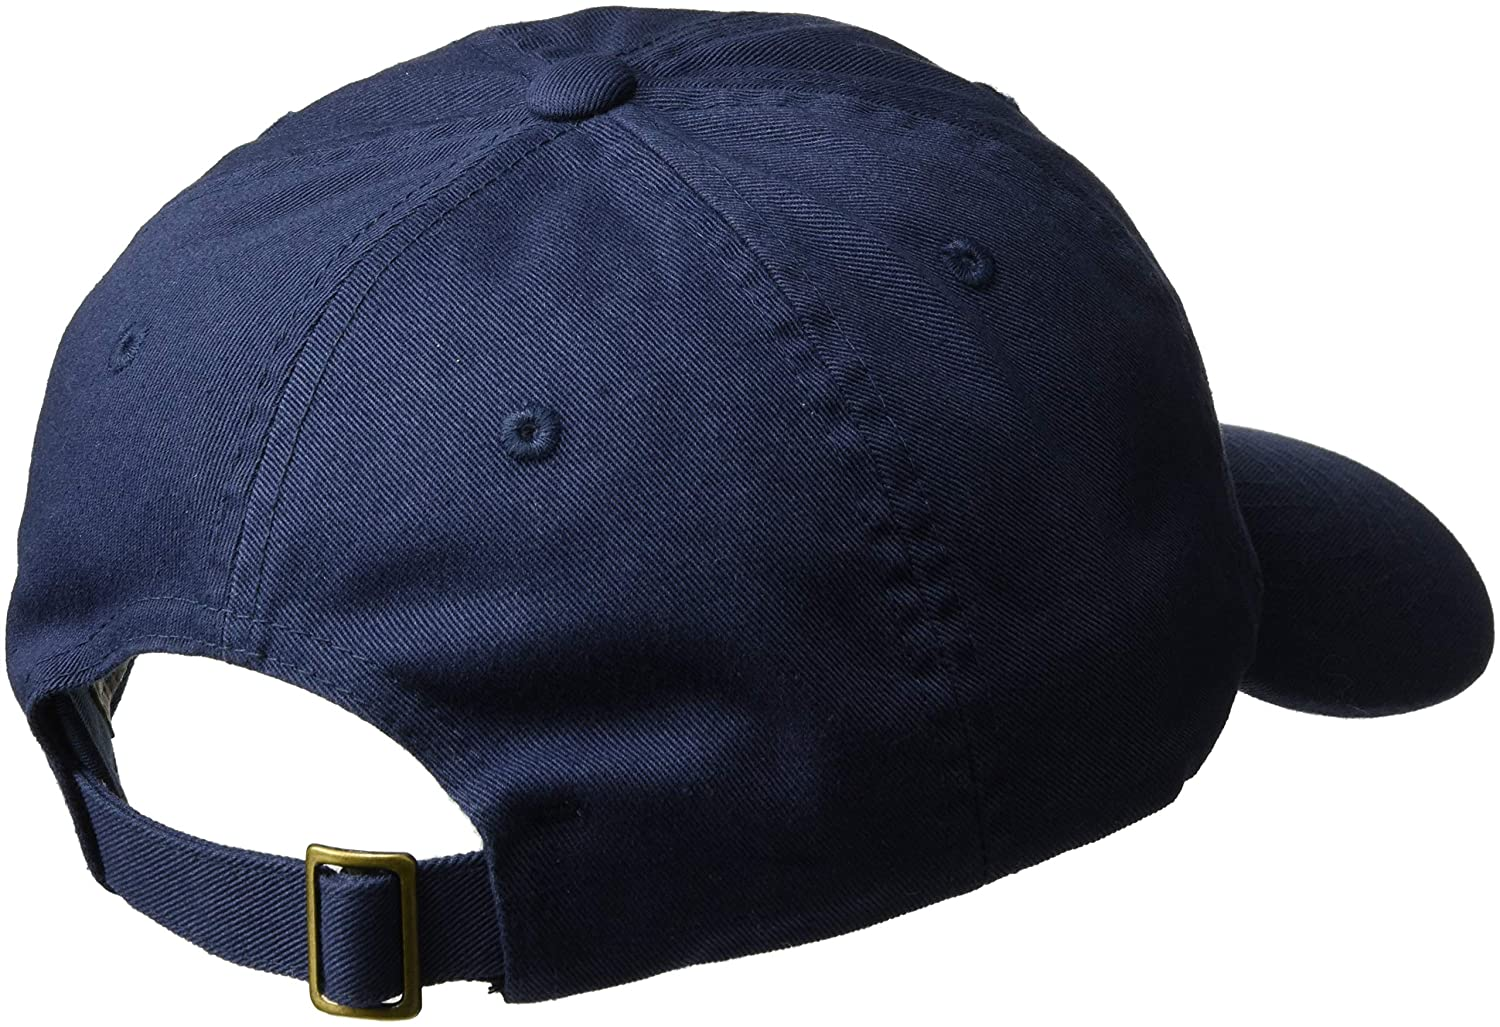 ecb6414e232 Amazon.com  Brixton Men s Coors Filtered Low Profile Unstructured  Adjustable Hat